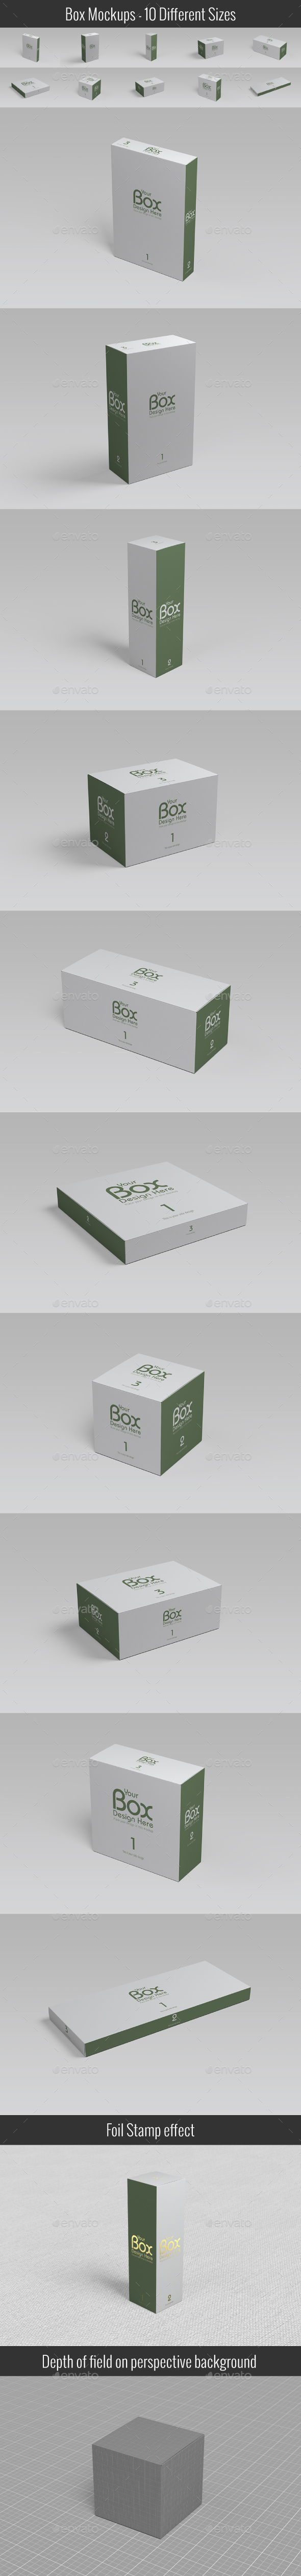 Package Box Mockups- 10 Different Sizes